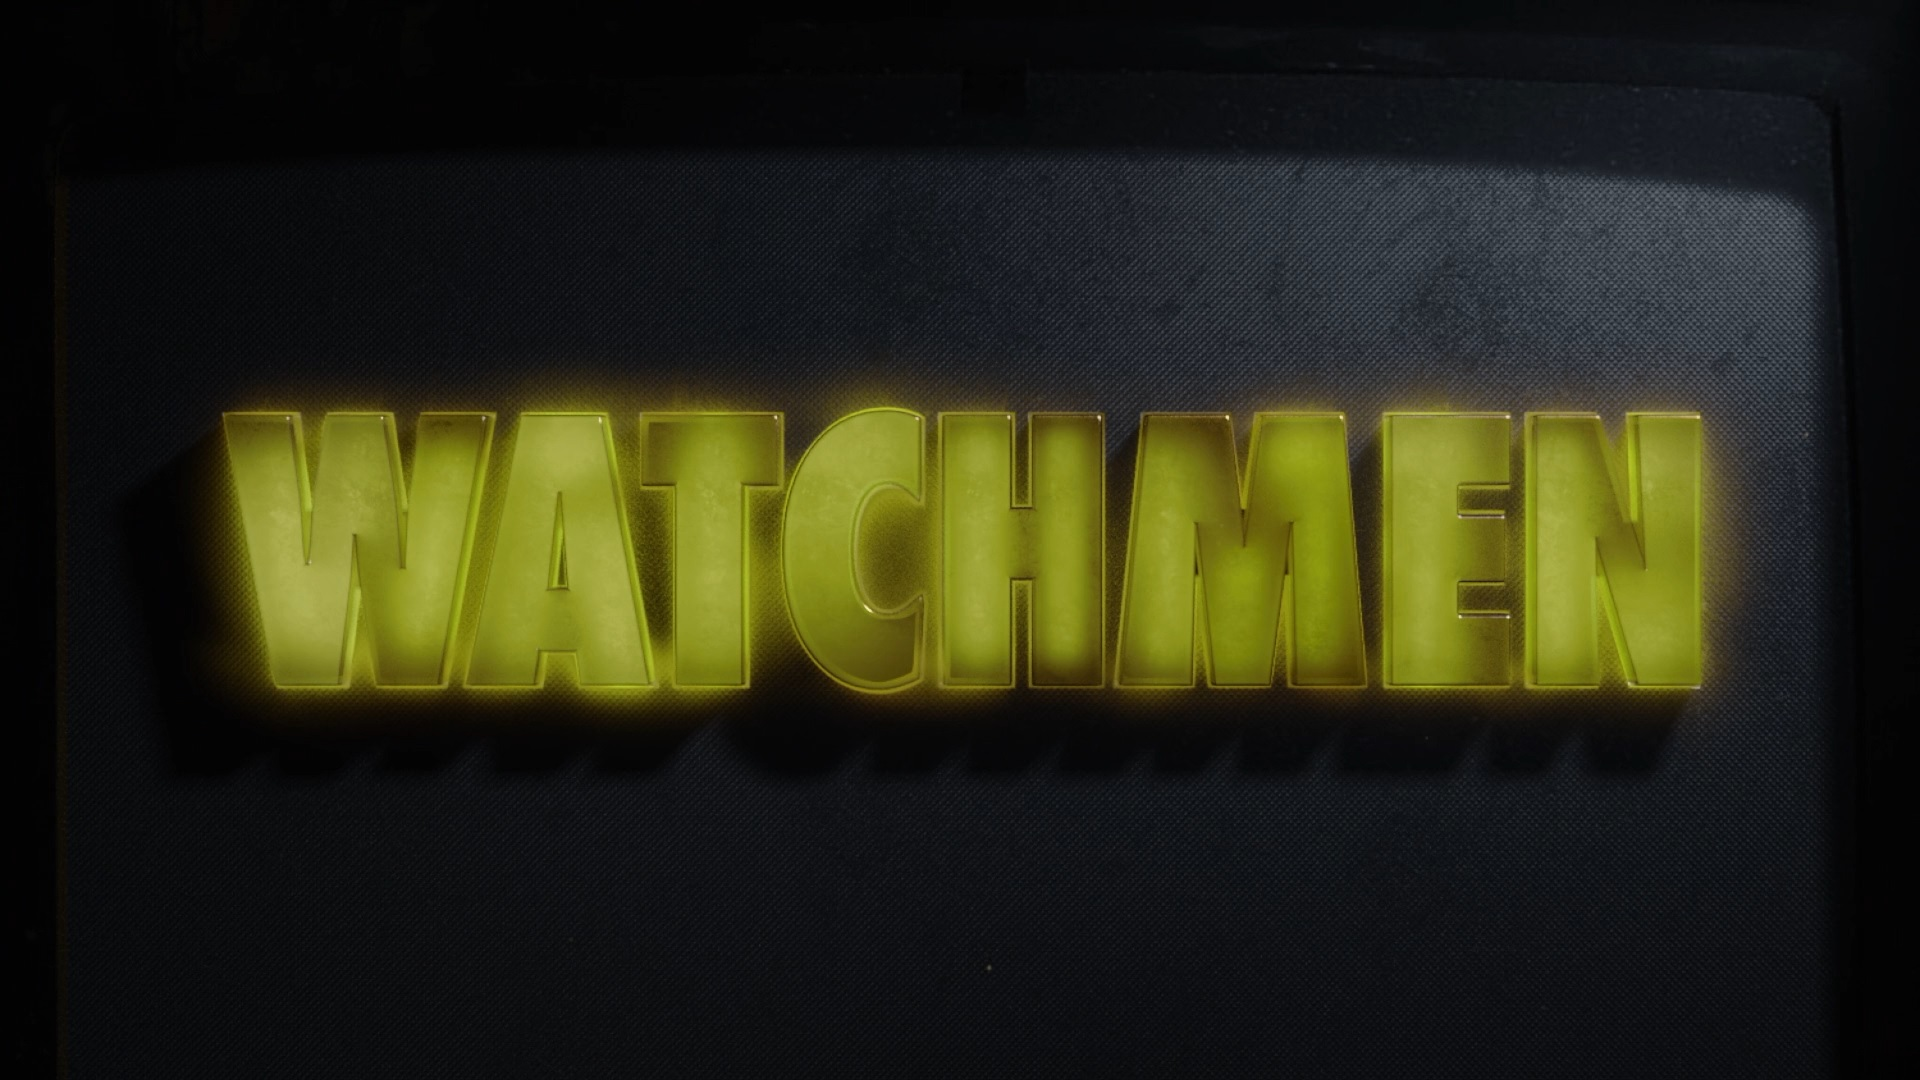 Watchmen (TV Series) Episode: She Was Killed by Space Junk